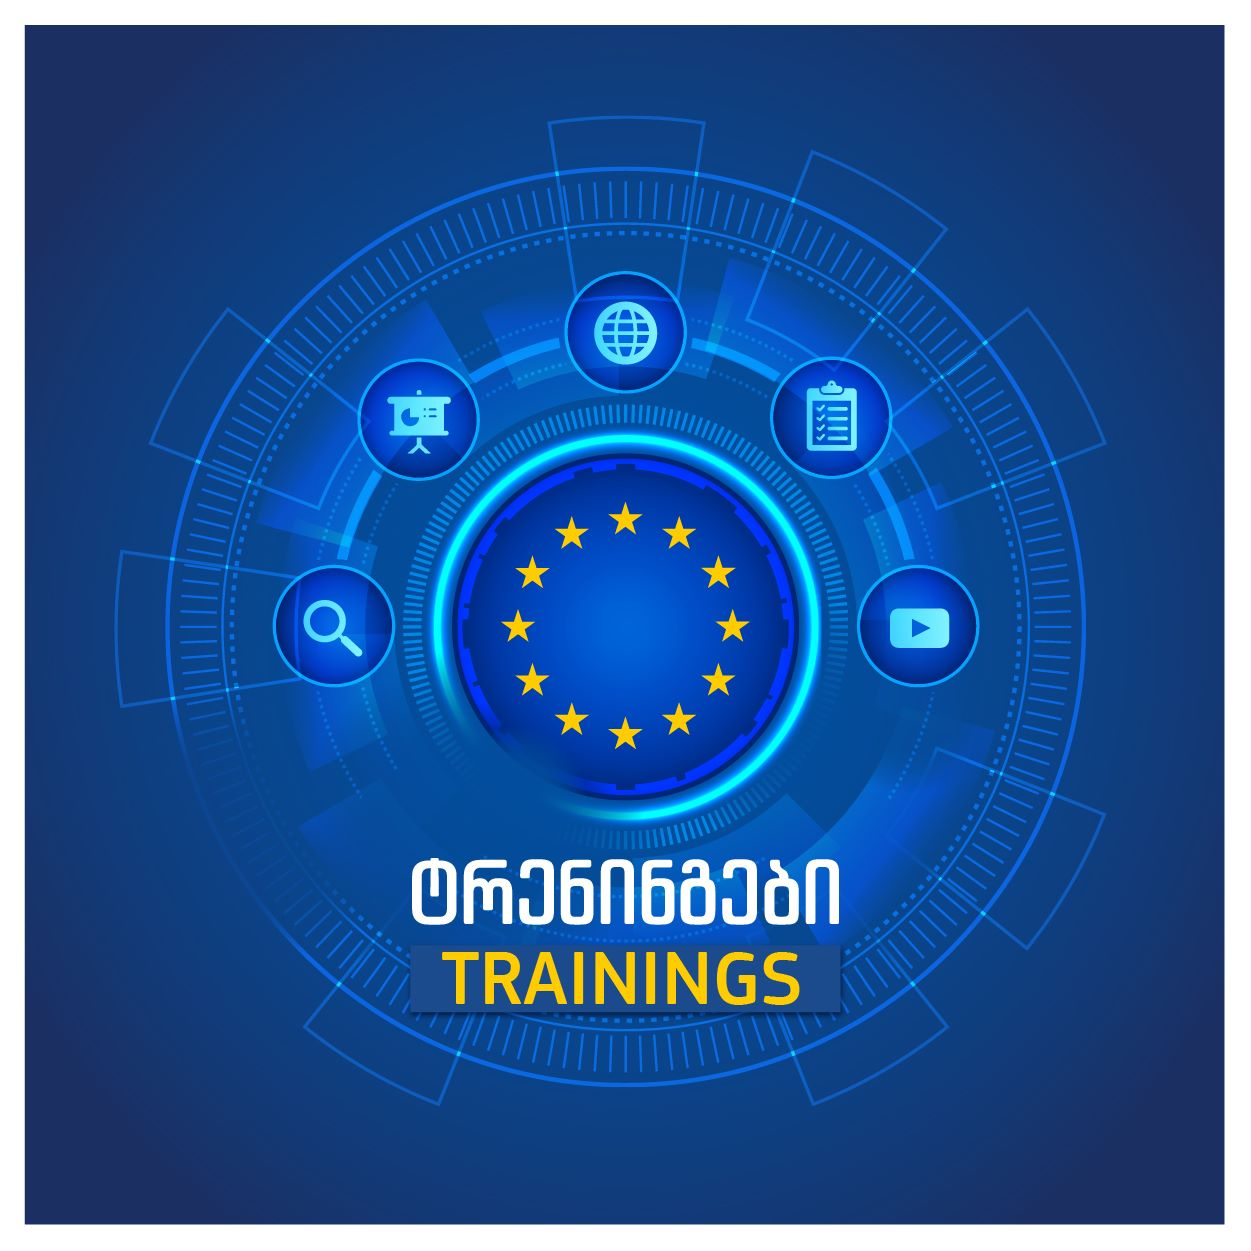 Virtual trainings on the upcoming Horizon 2020 Green Deal call